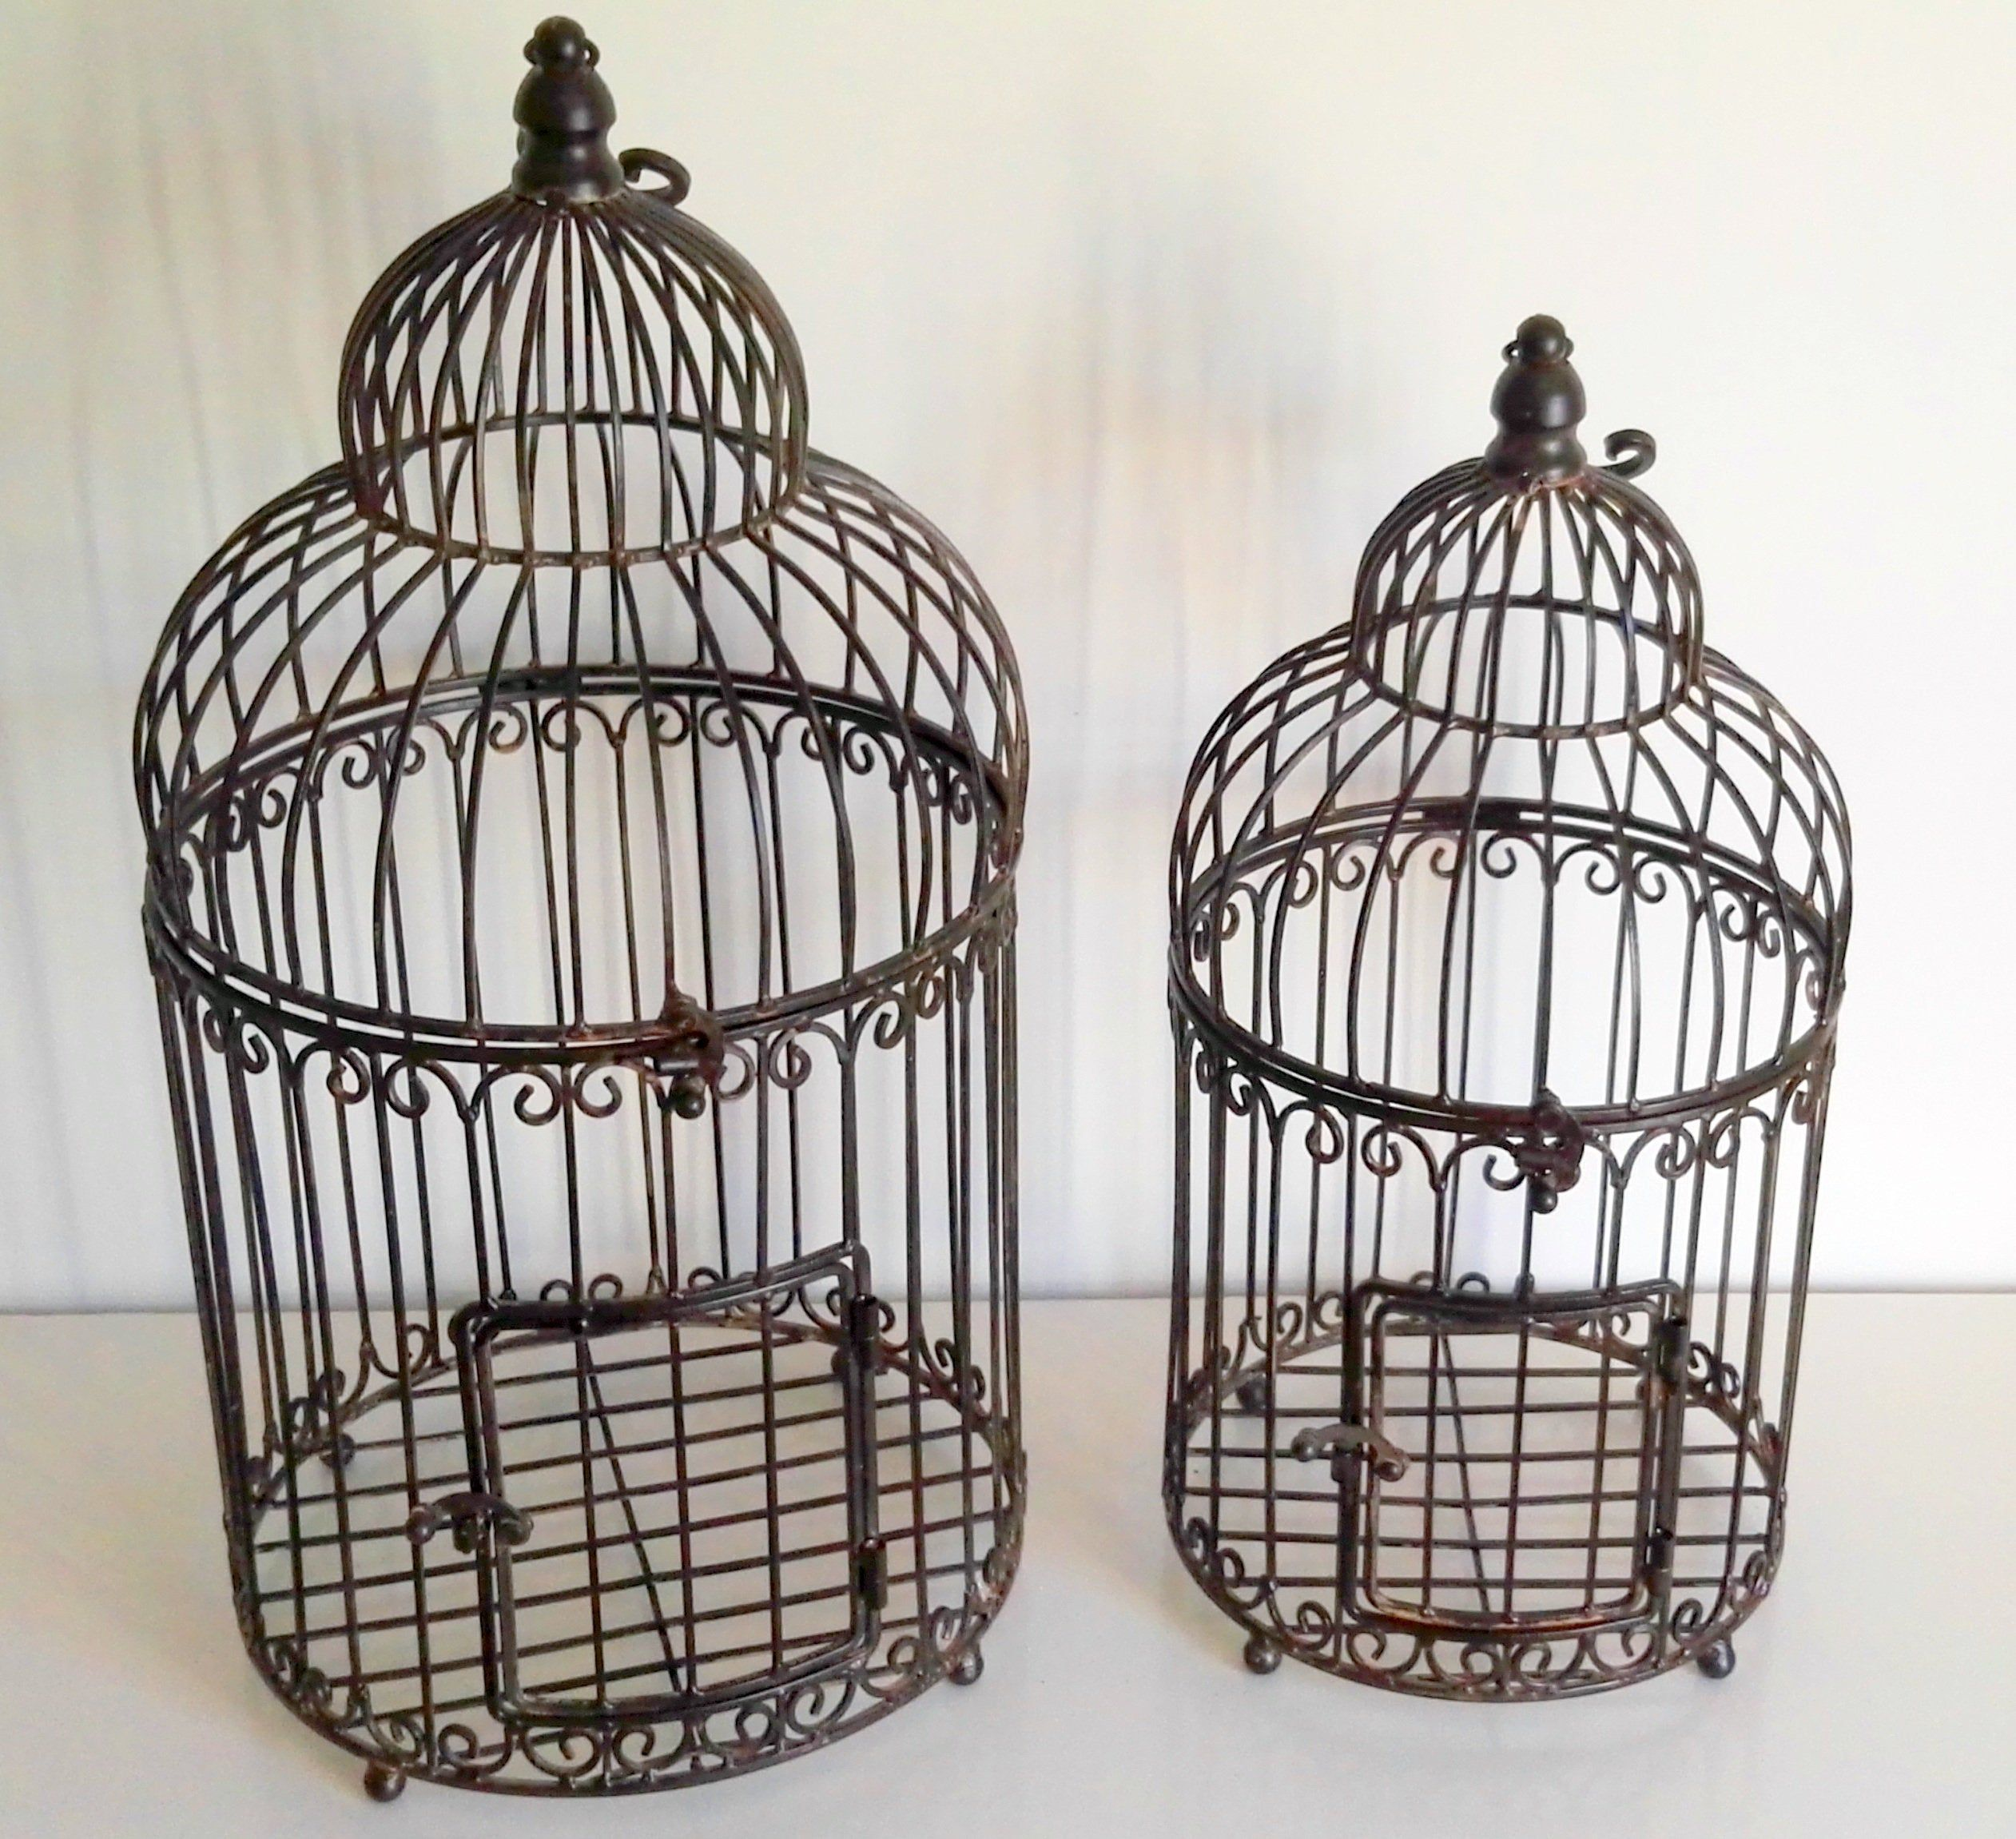 A set of 2 bird cages - decorative in garden or inside en